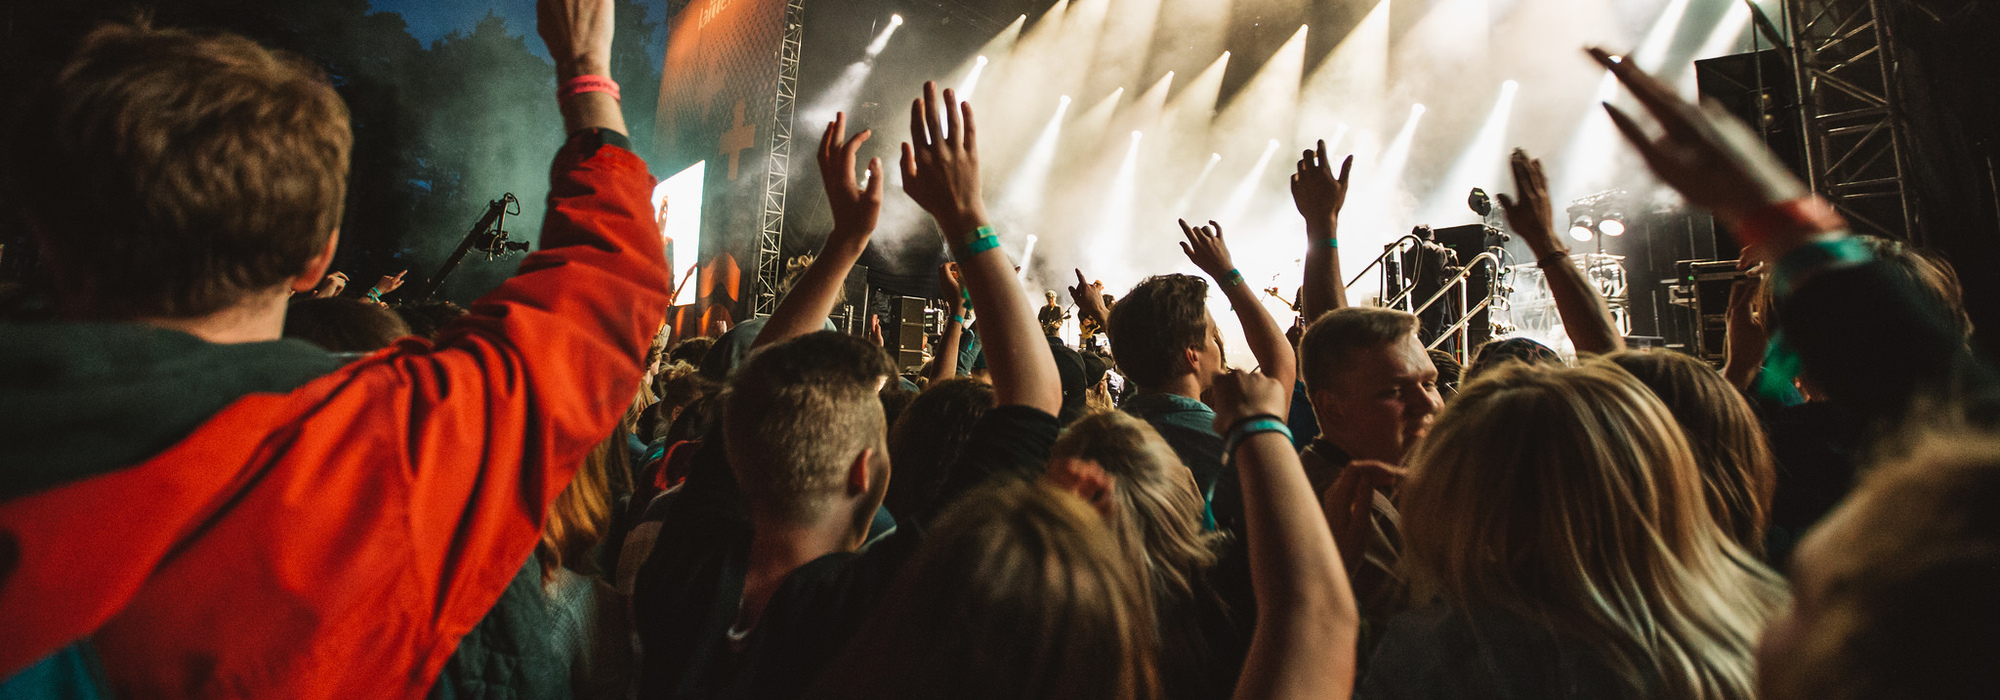 A Rocklahoma live event